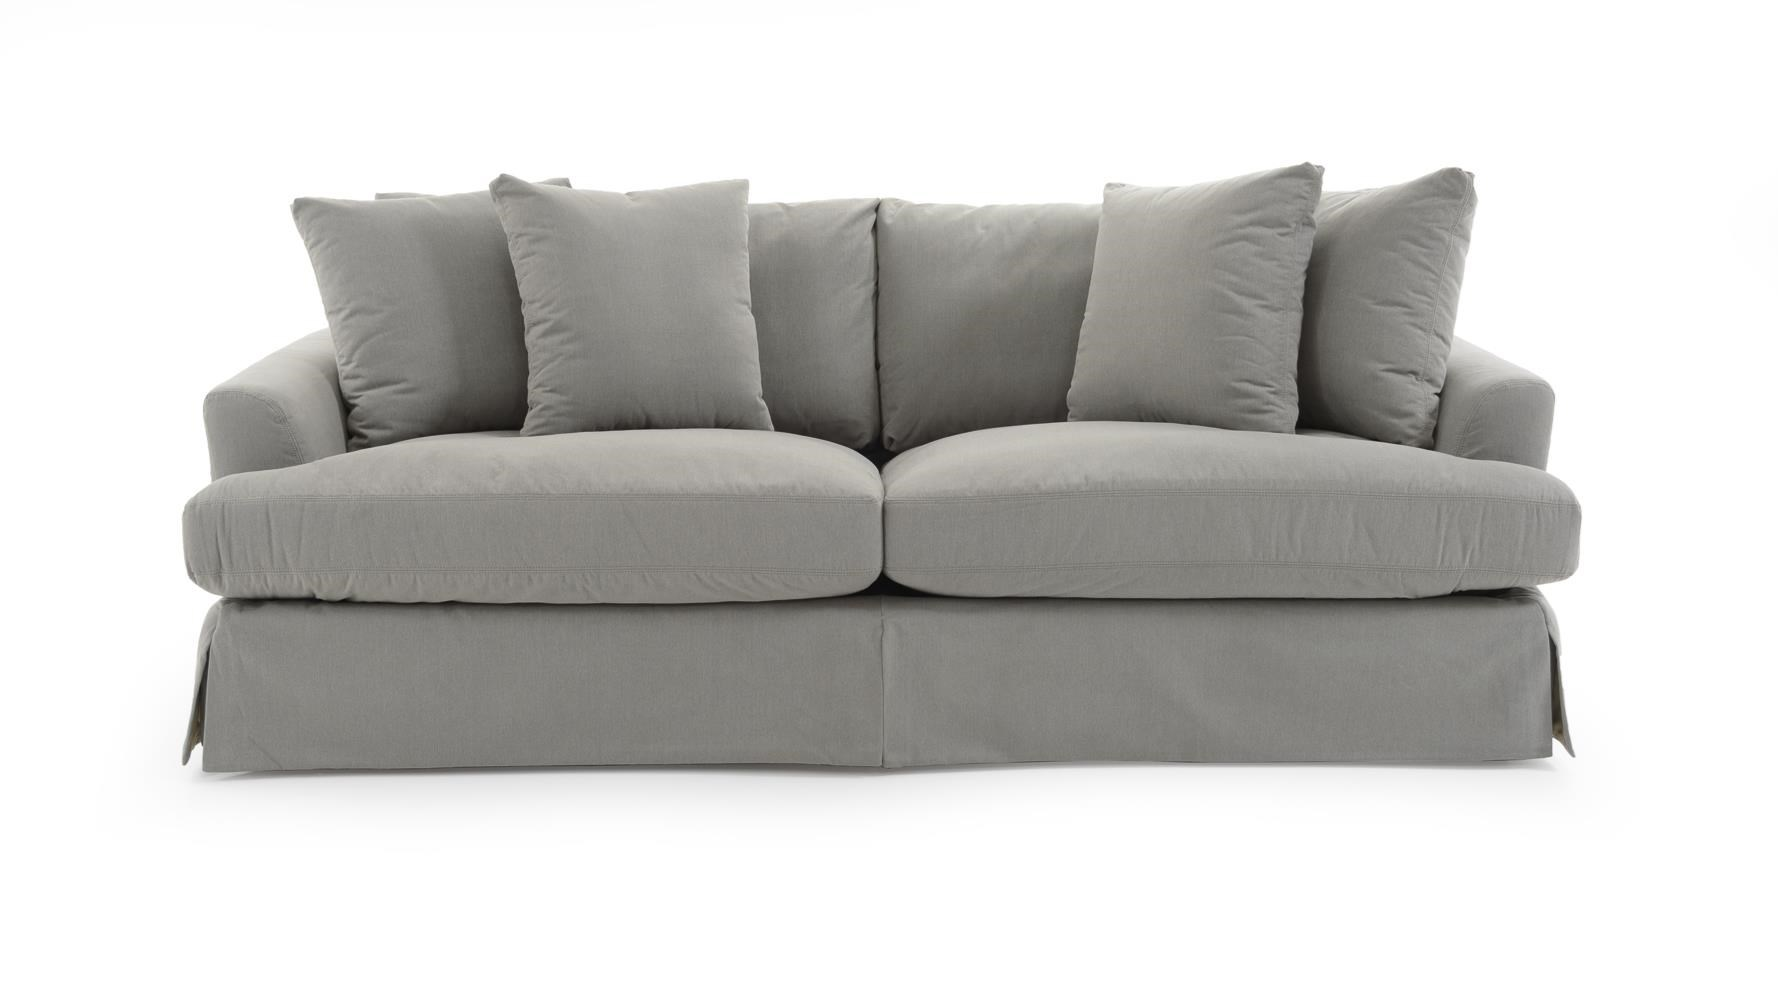 Synergy Home Furnishings 1300 Stationary 2-Seater Sofa ...